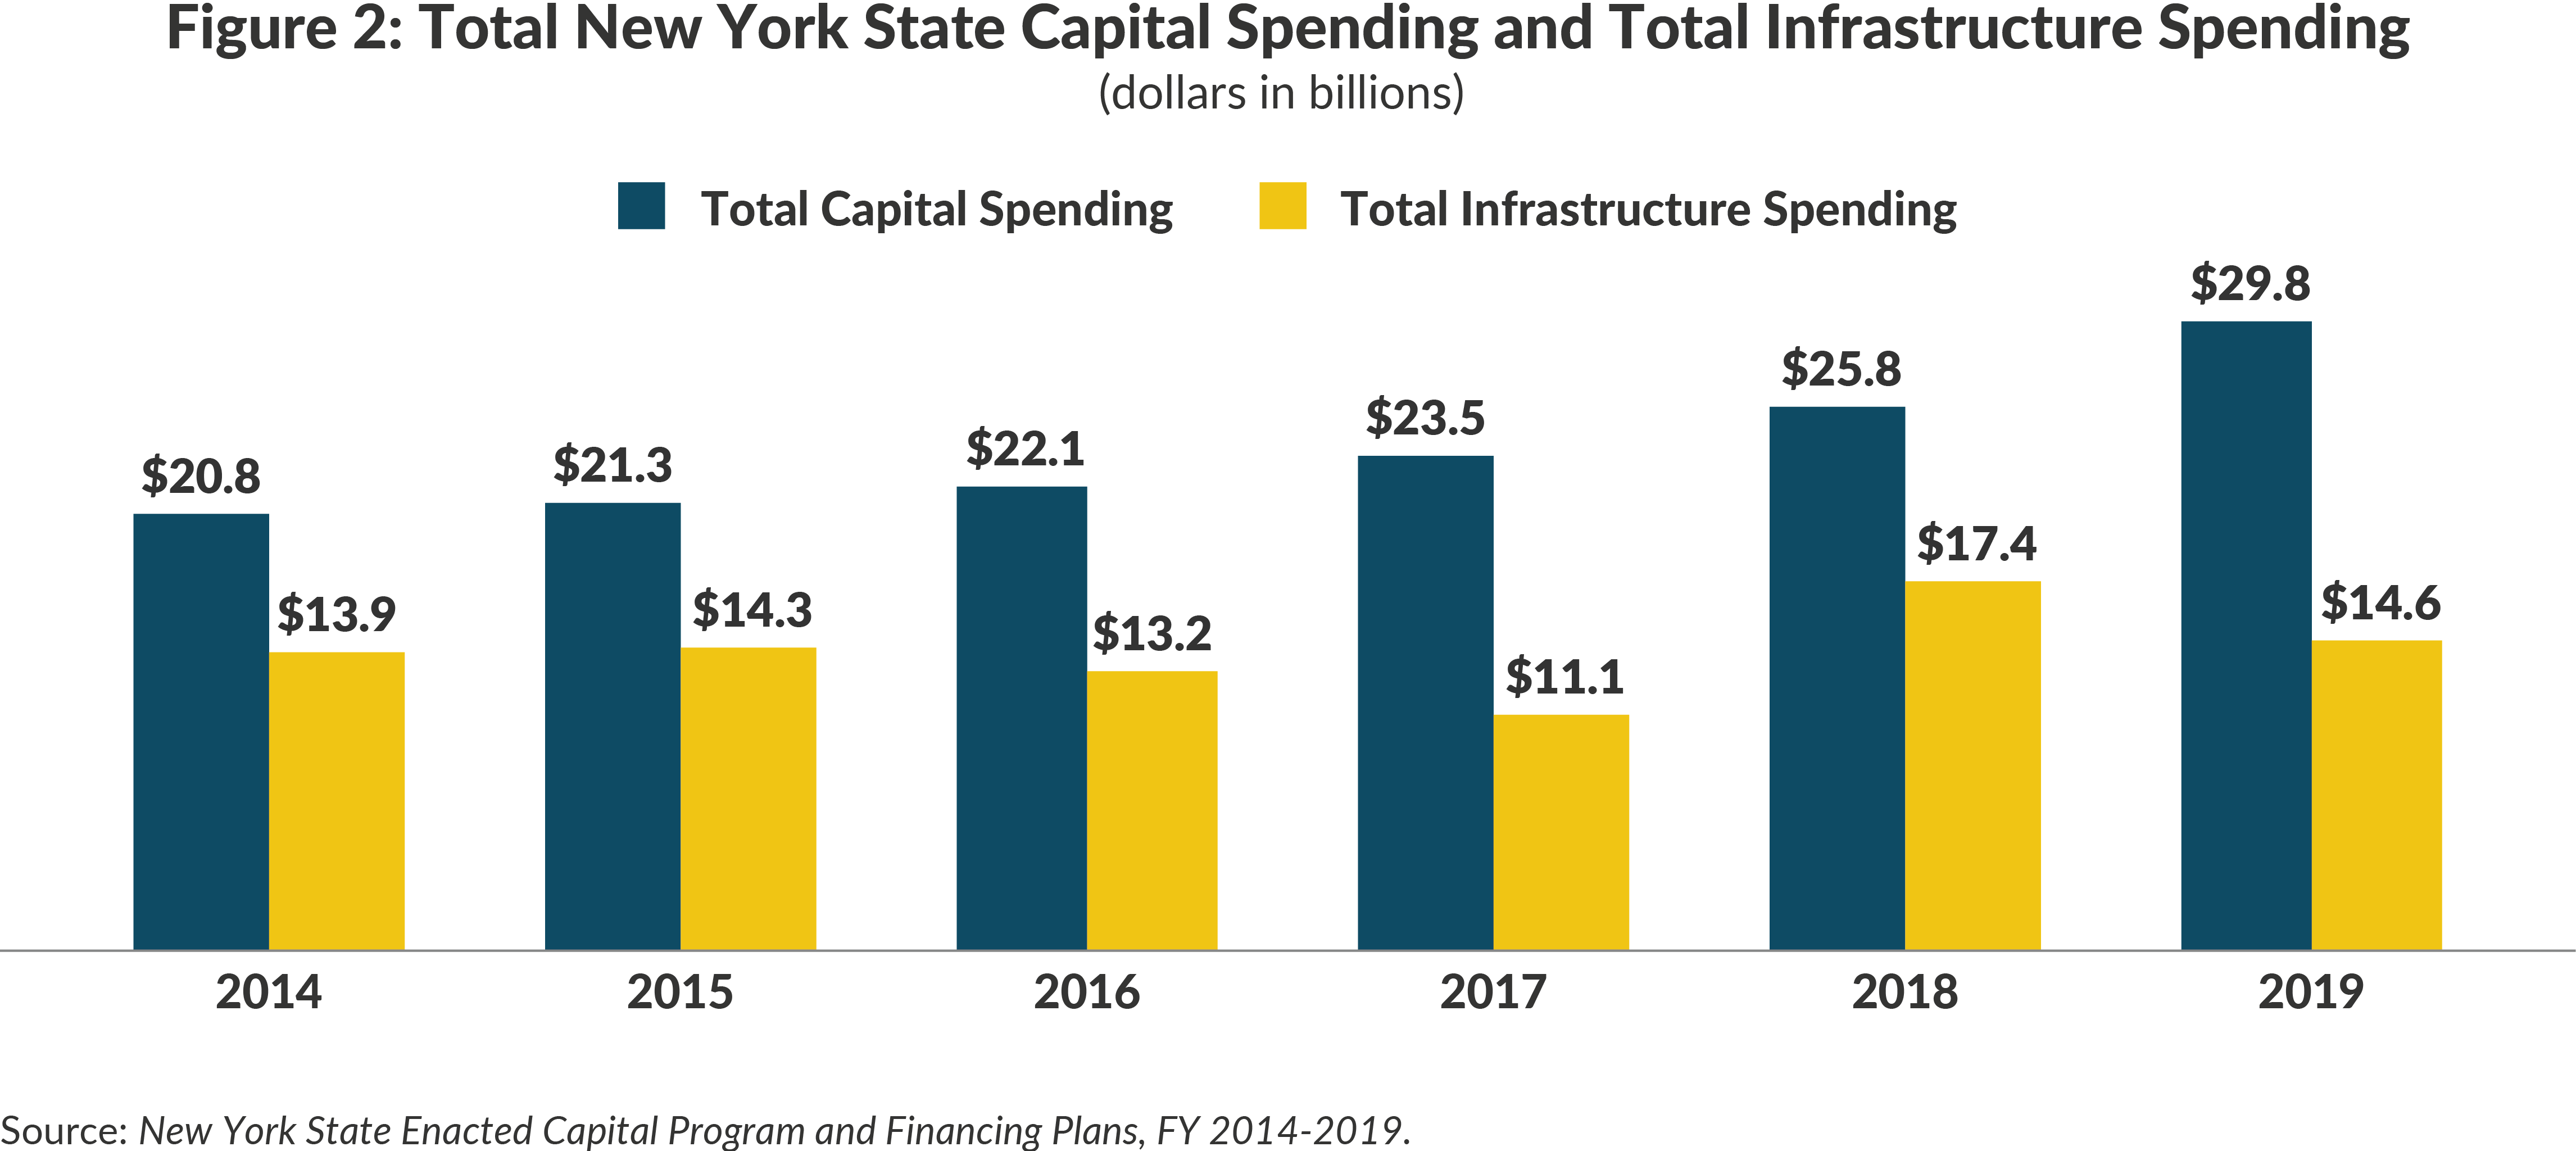 Figure 2: Total New York State Capital Spending and Total Infrastructure Spending